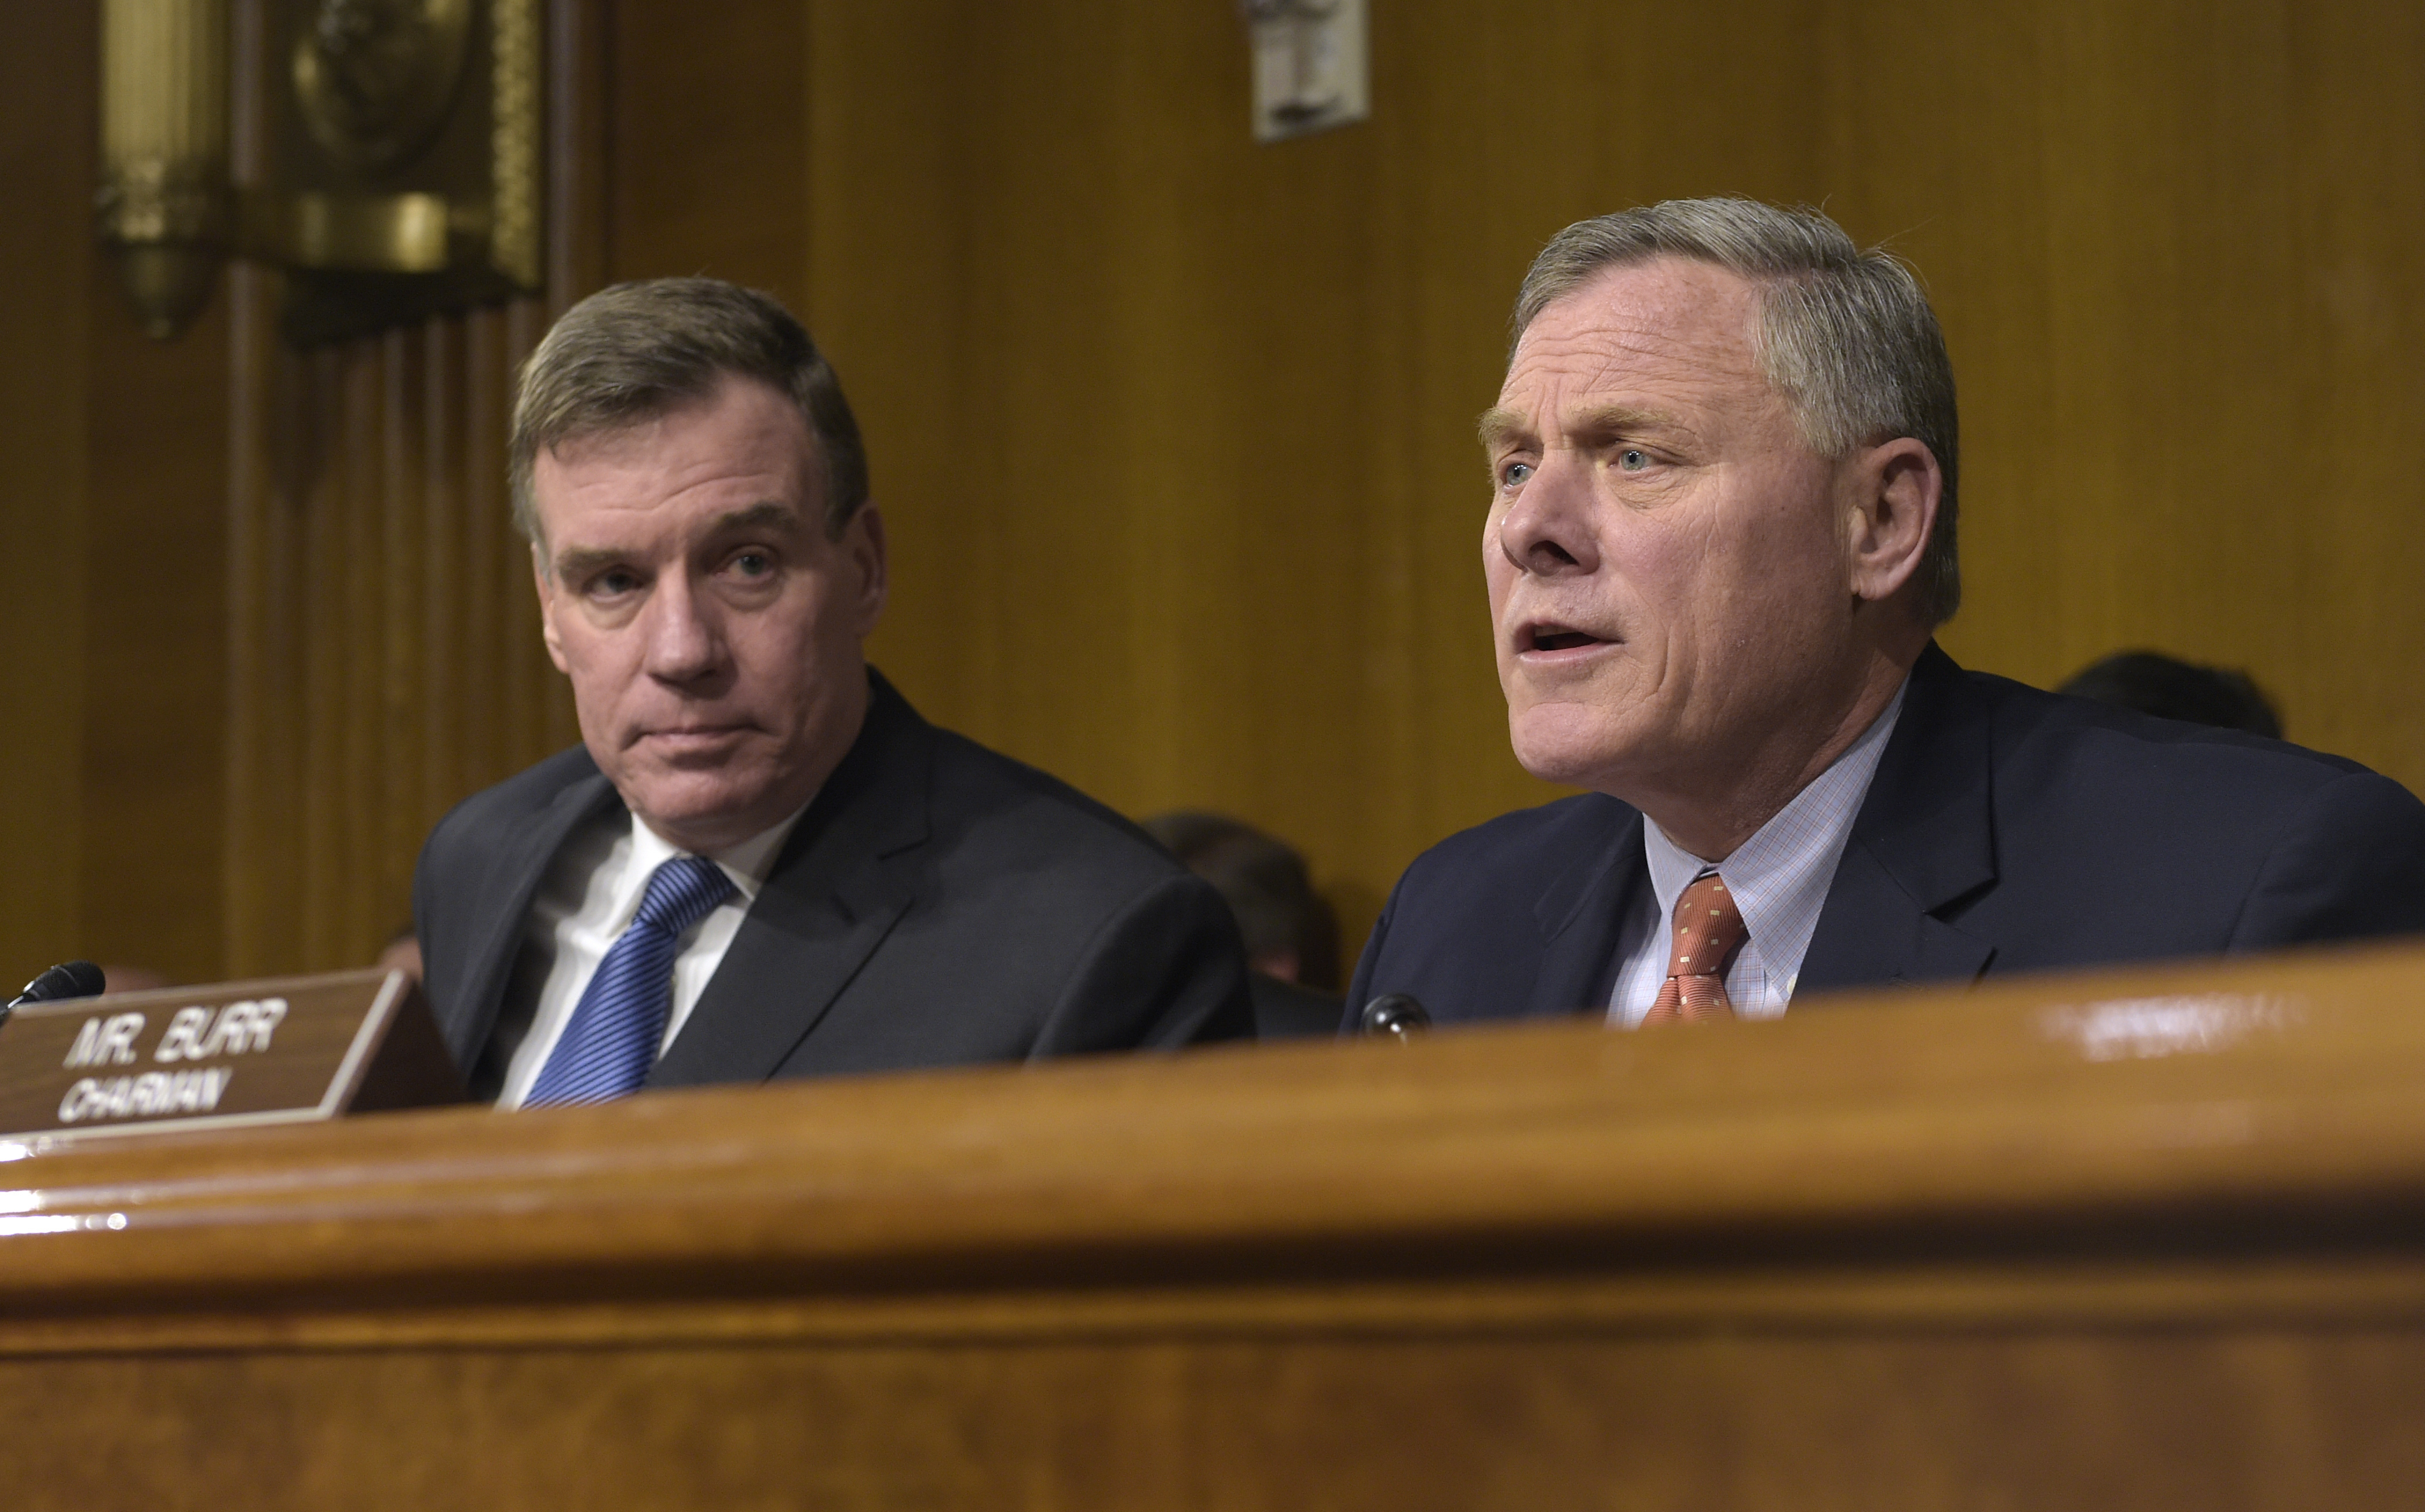 FILE - Senate Intelligence Committee Chairman. Sen. Richard Burr, R-N.C., right, joined by Vice Chairman Sen. Mark Warner, D-Va., left, speaks at the Senate Intelligence Committee hearing on Capitol Hill in Washington, March 30, 2017.